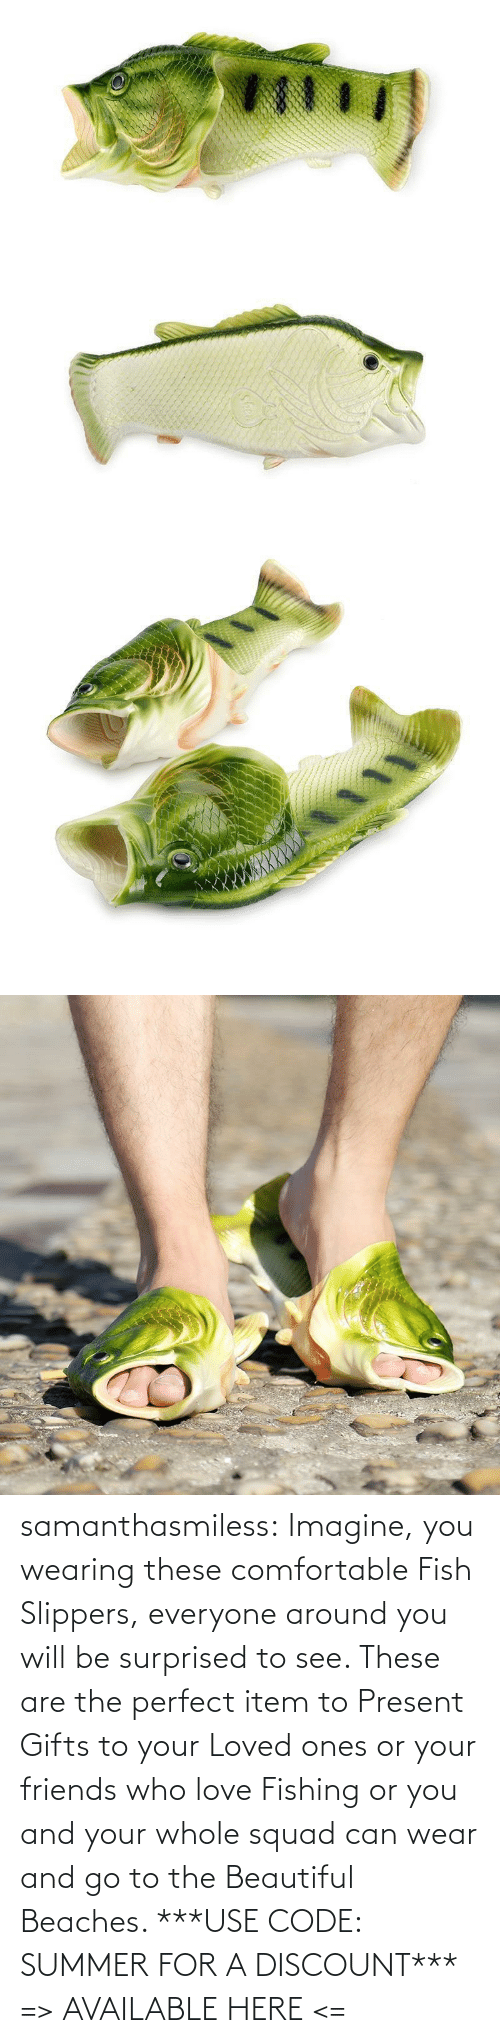 Squad: samanthasmiless: Imagine, you wearing these comfortable Fish Slippers, everyone around you will be surprised to see. These are the perfect item to Present Gifts to your Loved ones or your friends who love Fishing or you and your whole squad can wear and go to the Beautiful Beaches.  ***USE CODE: SUMMER FOR A DISCOUNT*** => AVAILABLE HERE <=